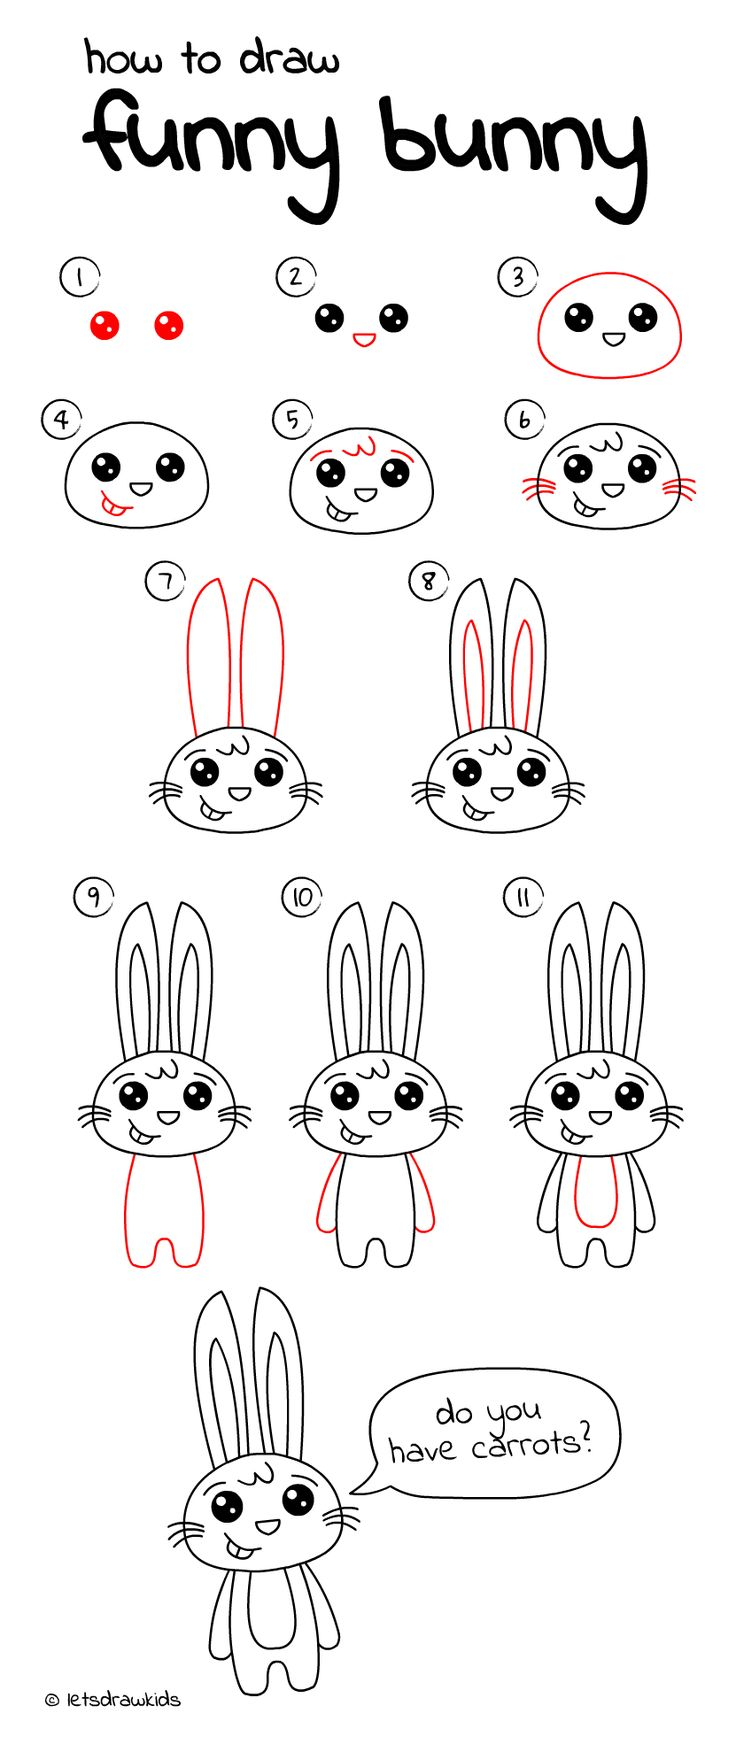 Uncategorized Simple Drawing For Kids Step By Step best 25 drawing for kids ideas on pinterest easy drawings how to draw funny bunny step by perfect kids